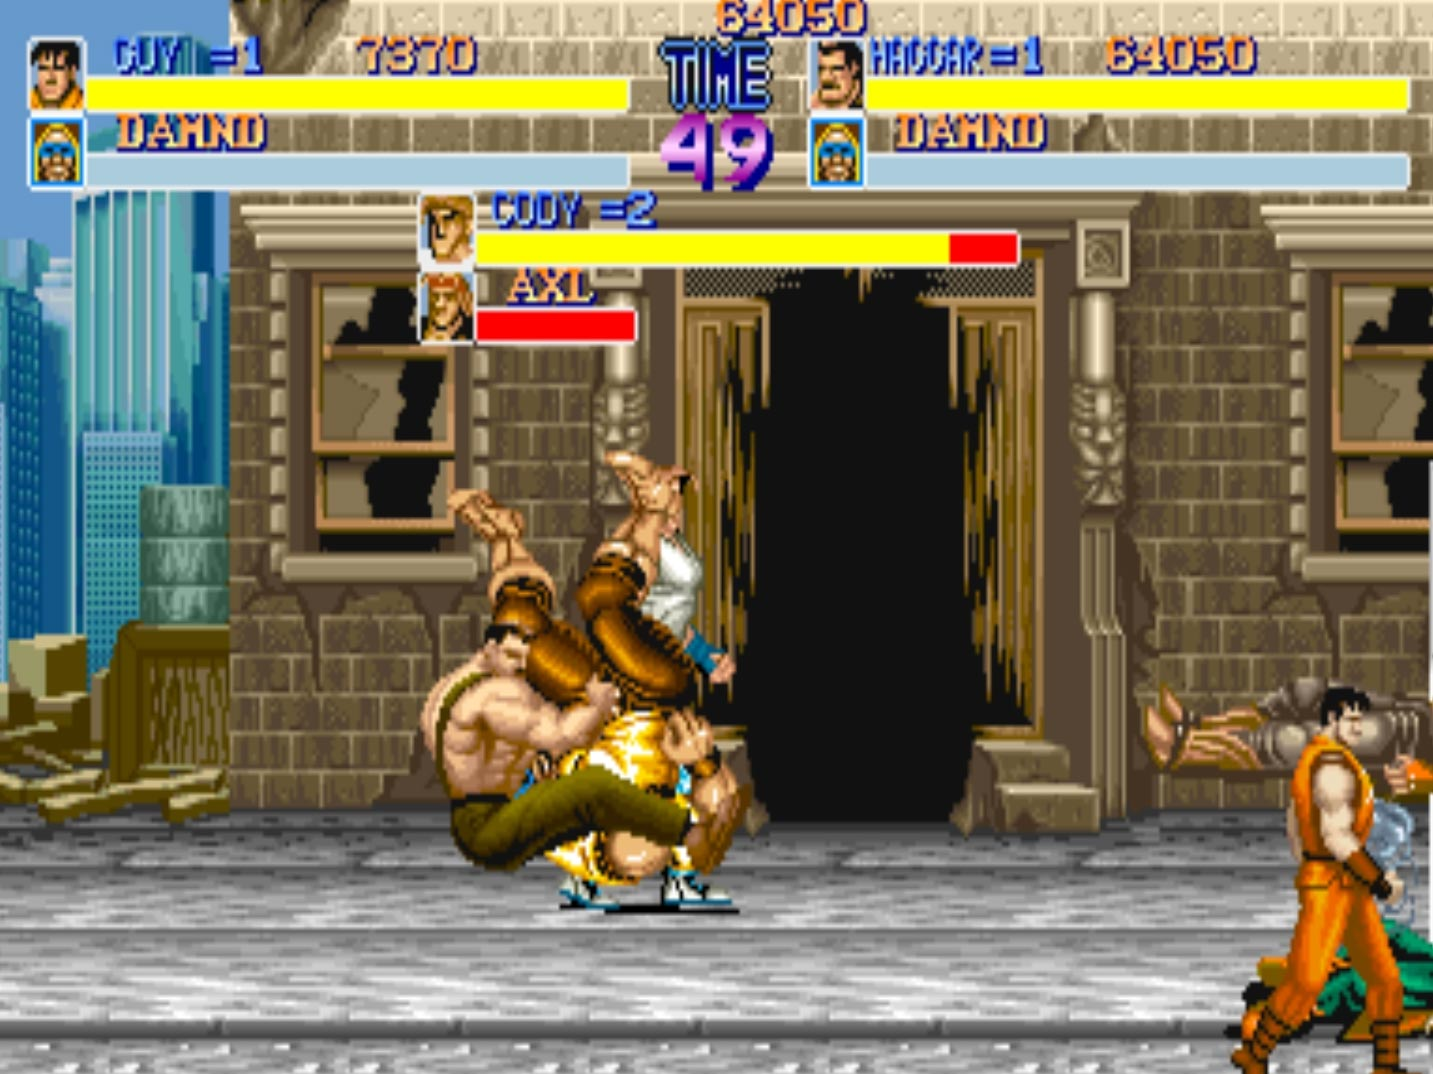 Final Fight X 3 5 out of 5 image gallery